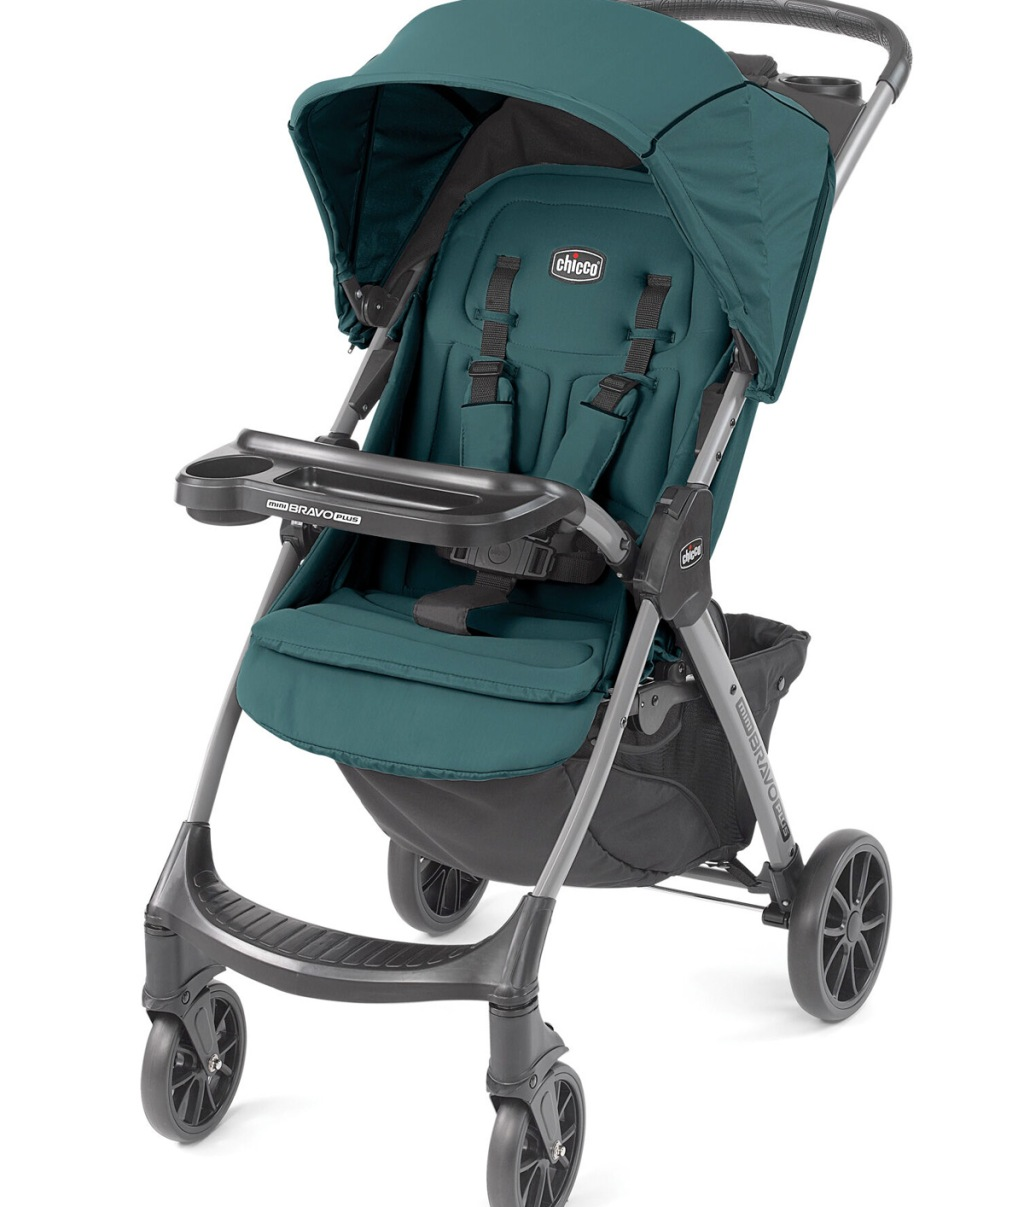 green and dark grey baby stroller with canopy